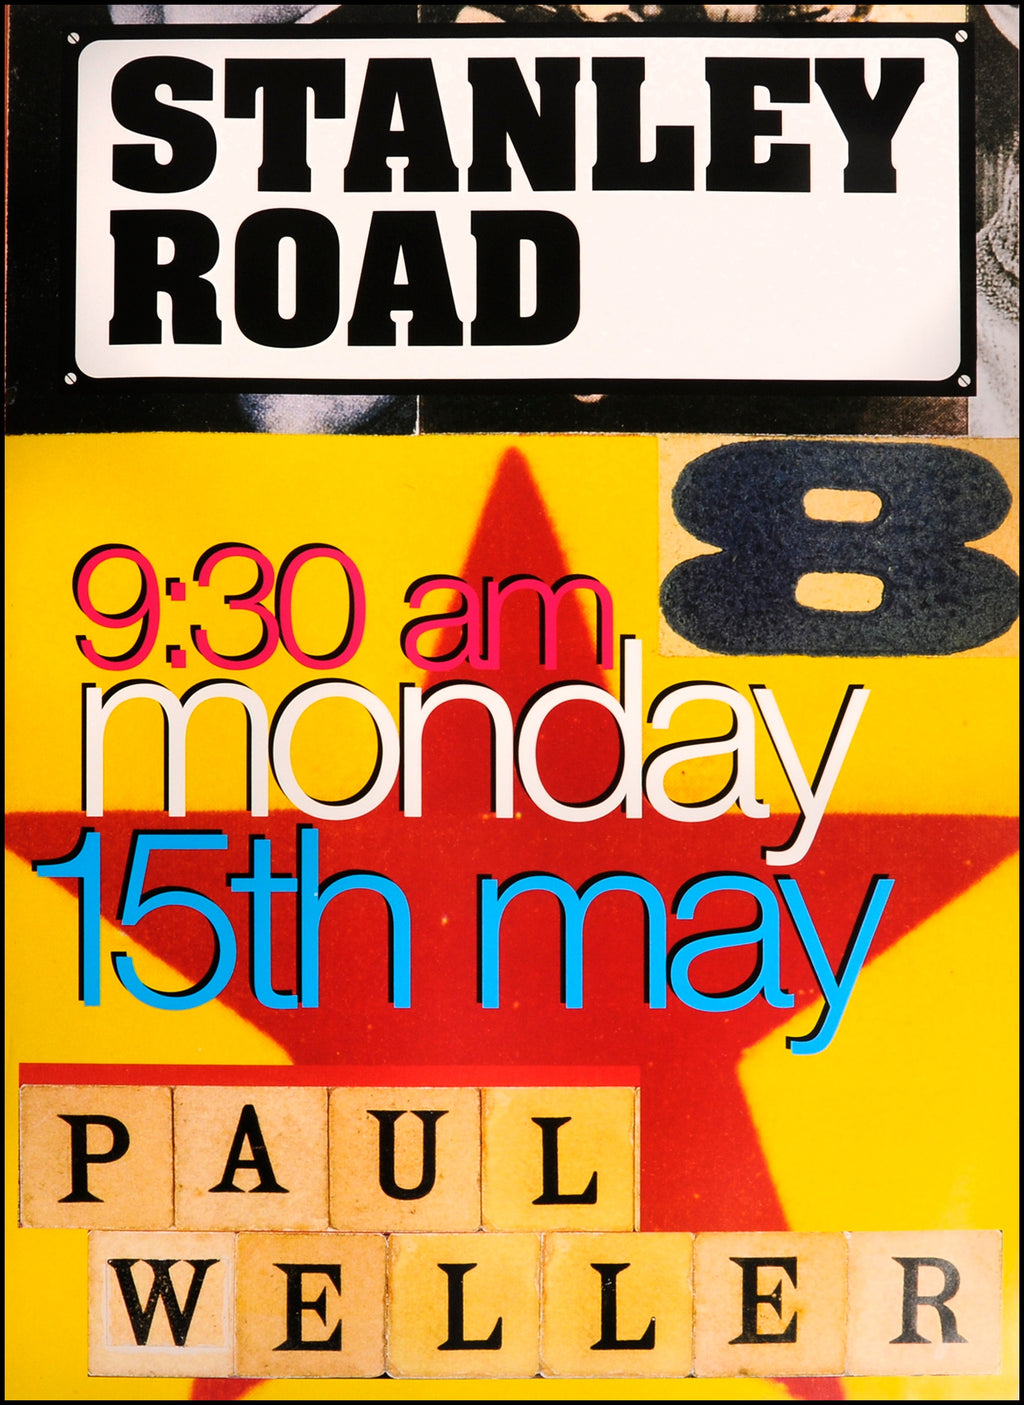 Paul Weller original poster - Stanley Road